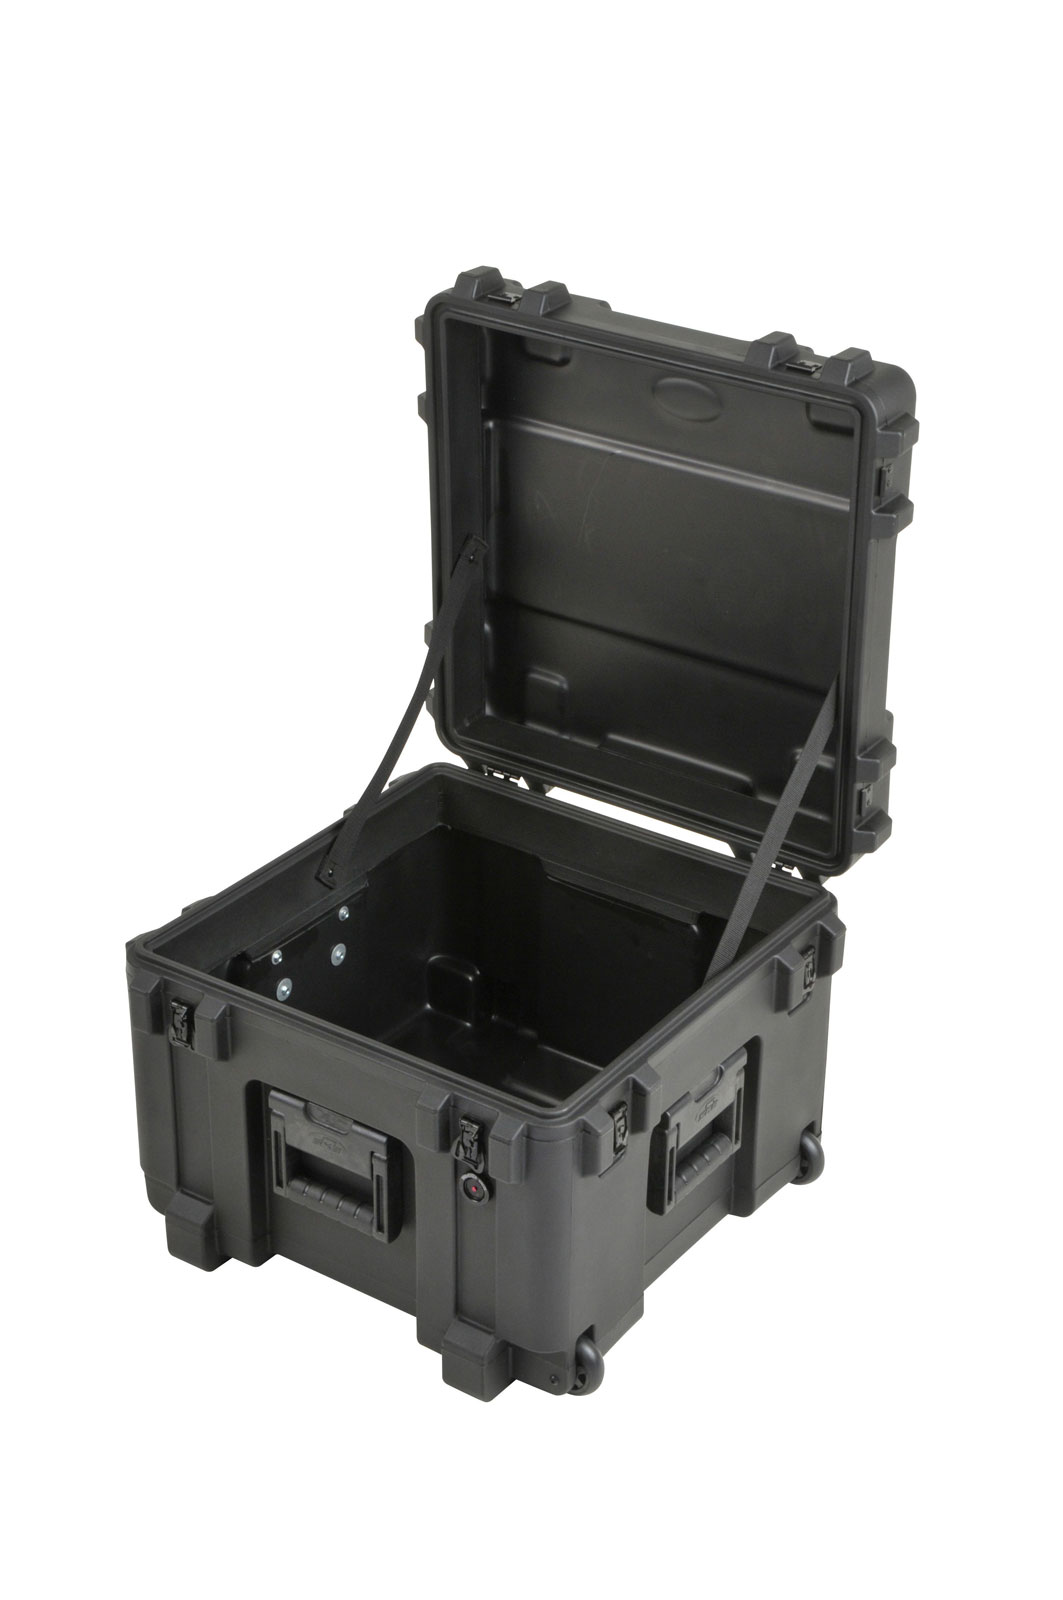 3R1919-14B-EW - UNIVERSAL WATERPROOF ROTO-MOLDED CASE 483 X 483 X 368 (289+76) MM EMPTY WITH WHEEL